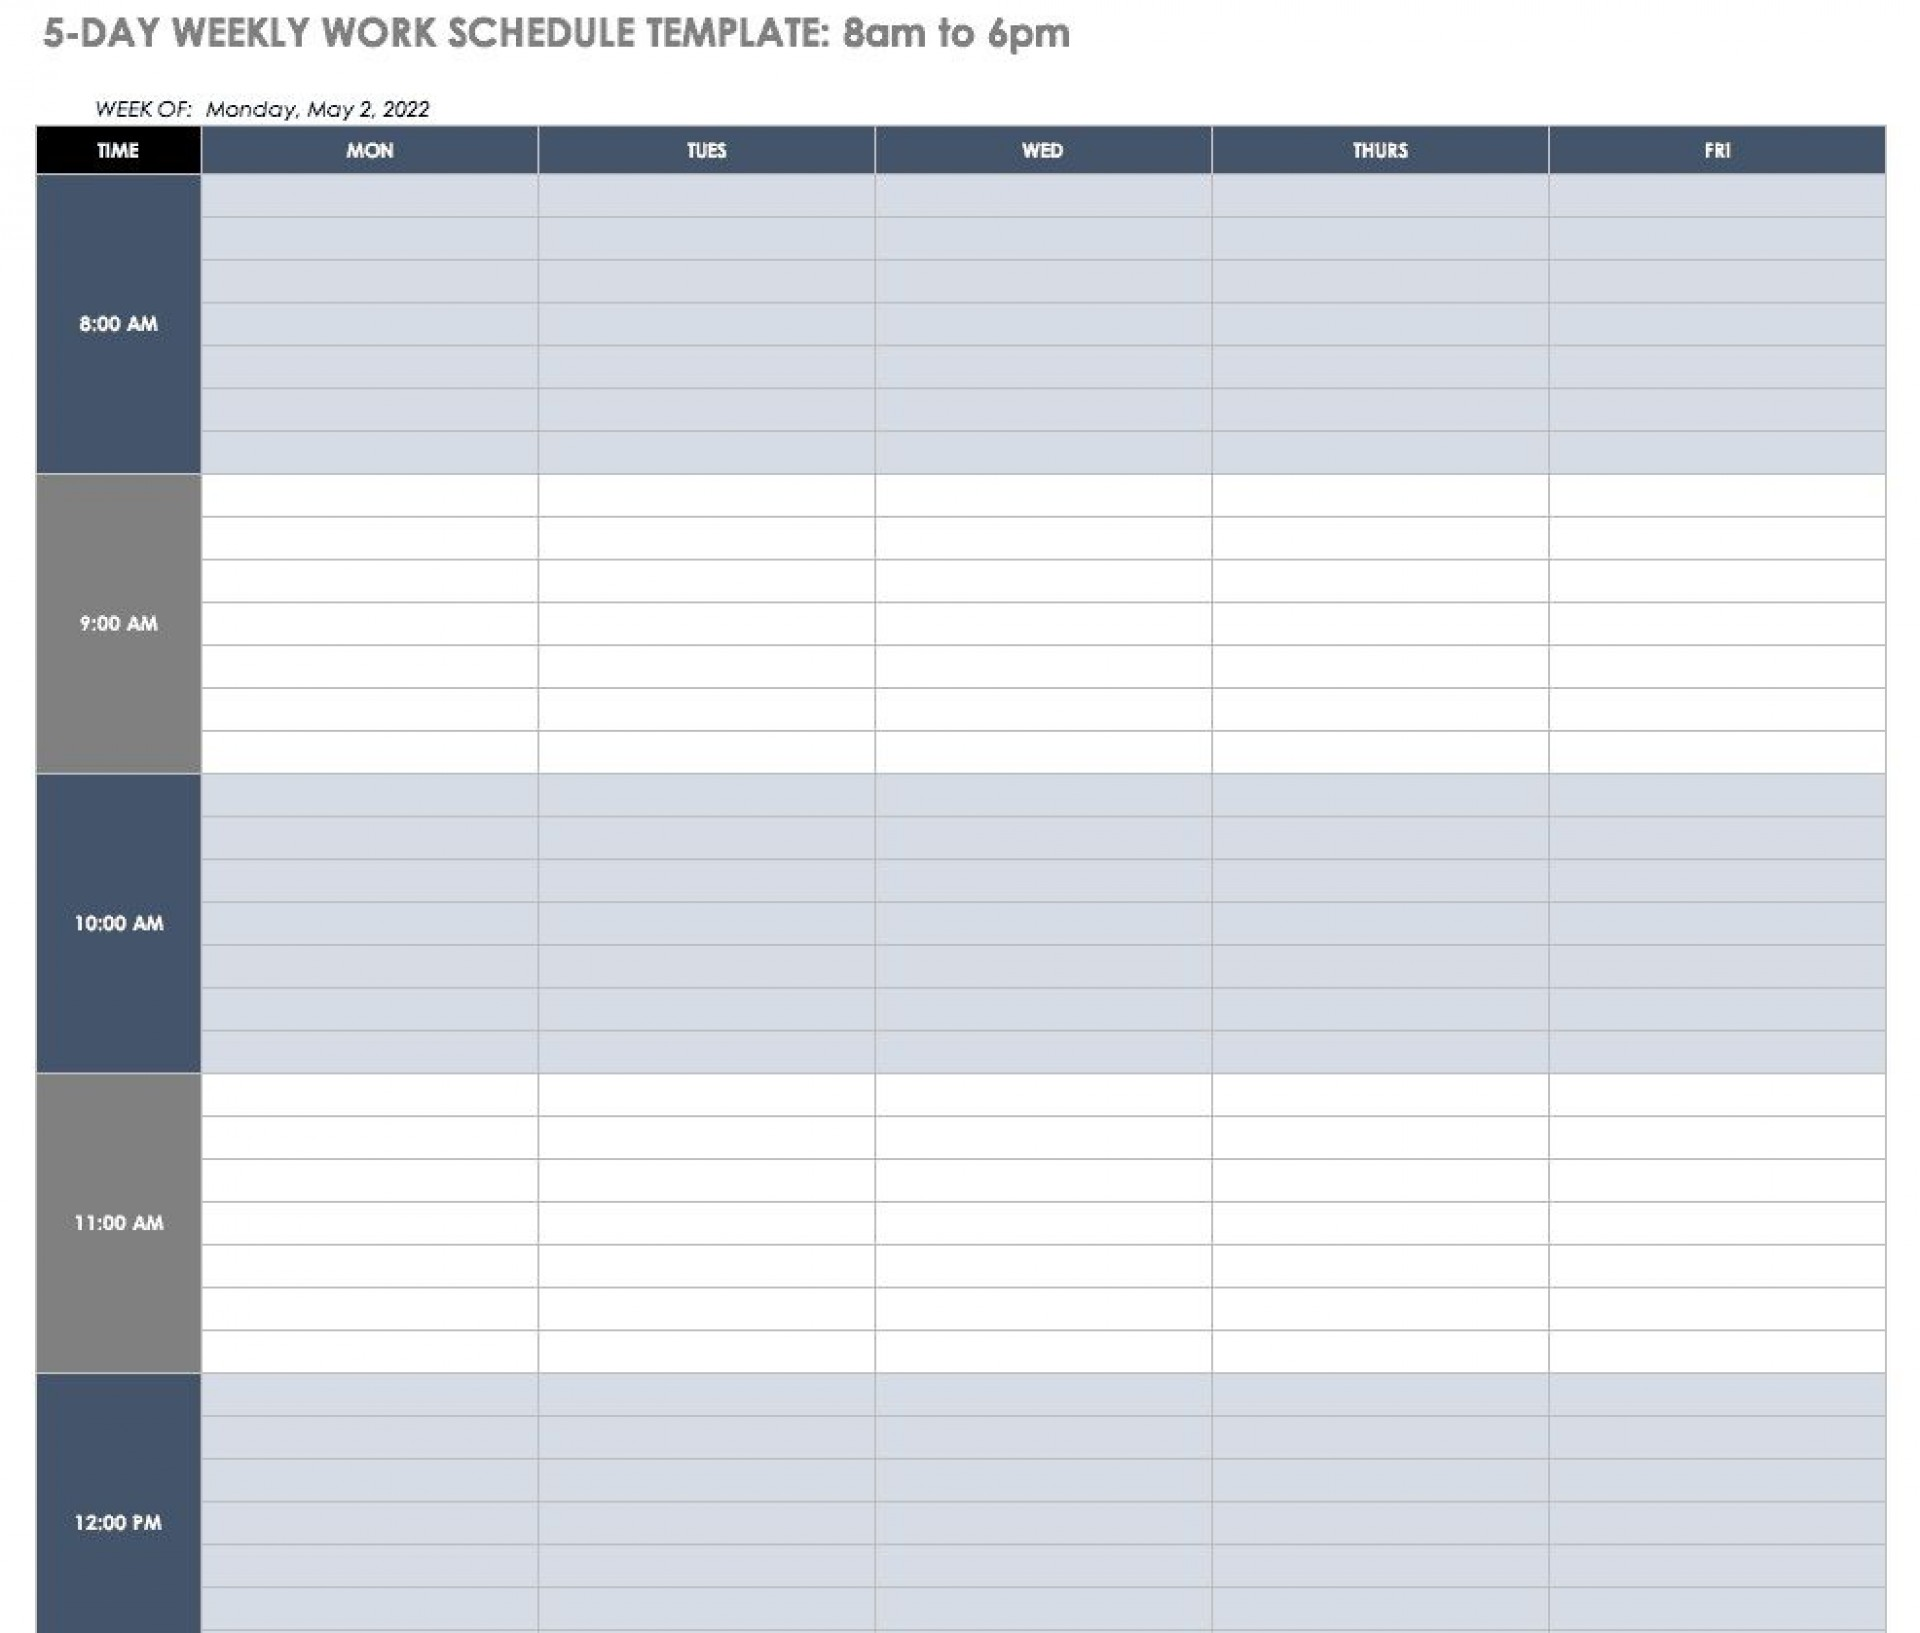 006 Formidable Free Employee Scheduling Template Photo  Templates Weekly Work Schedule Printable Training Plan Excel1920